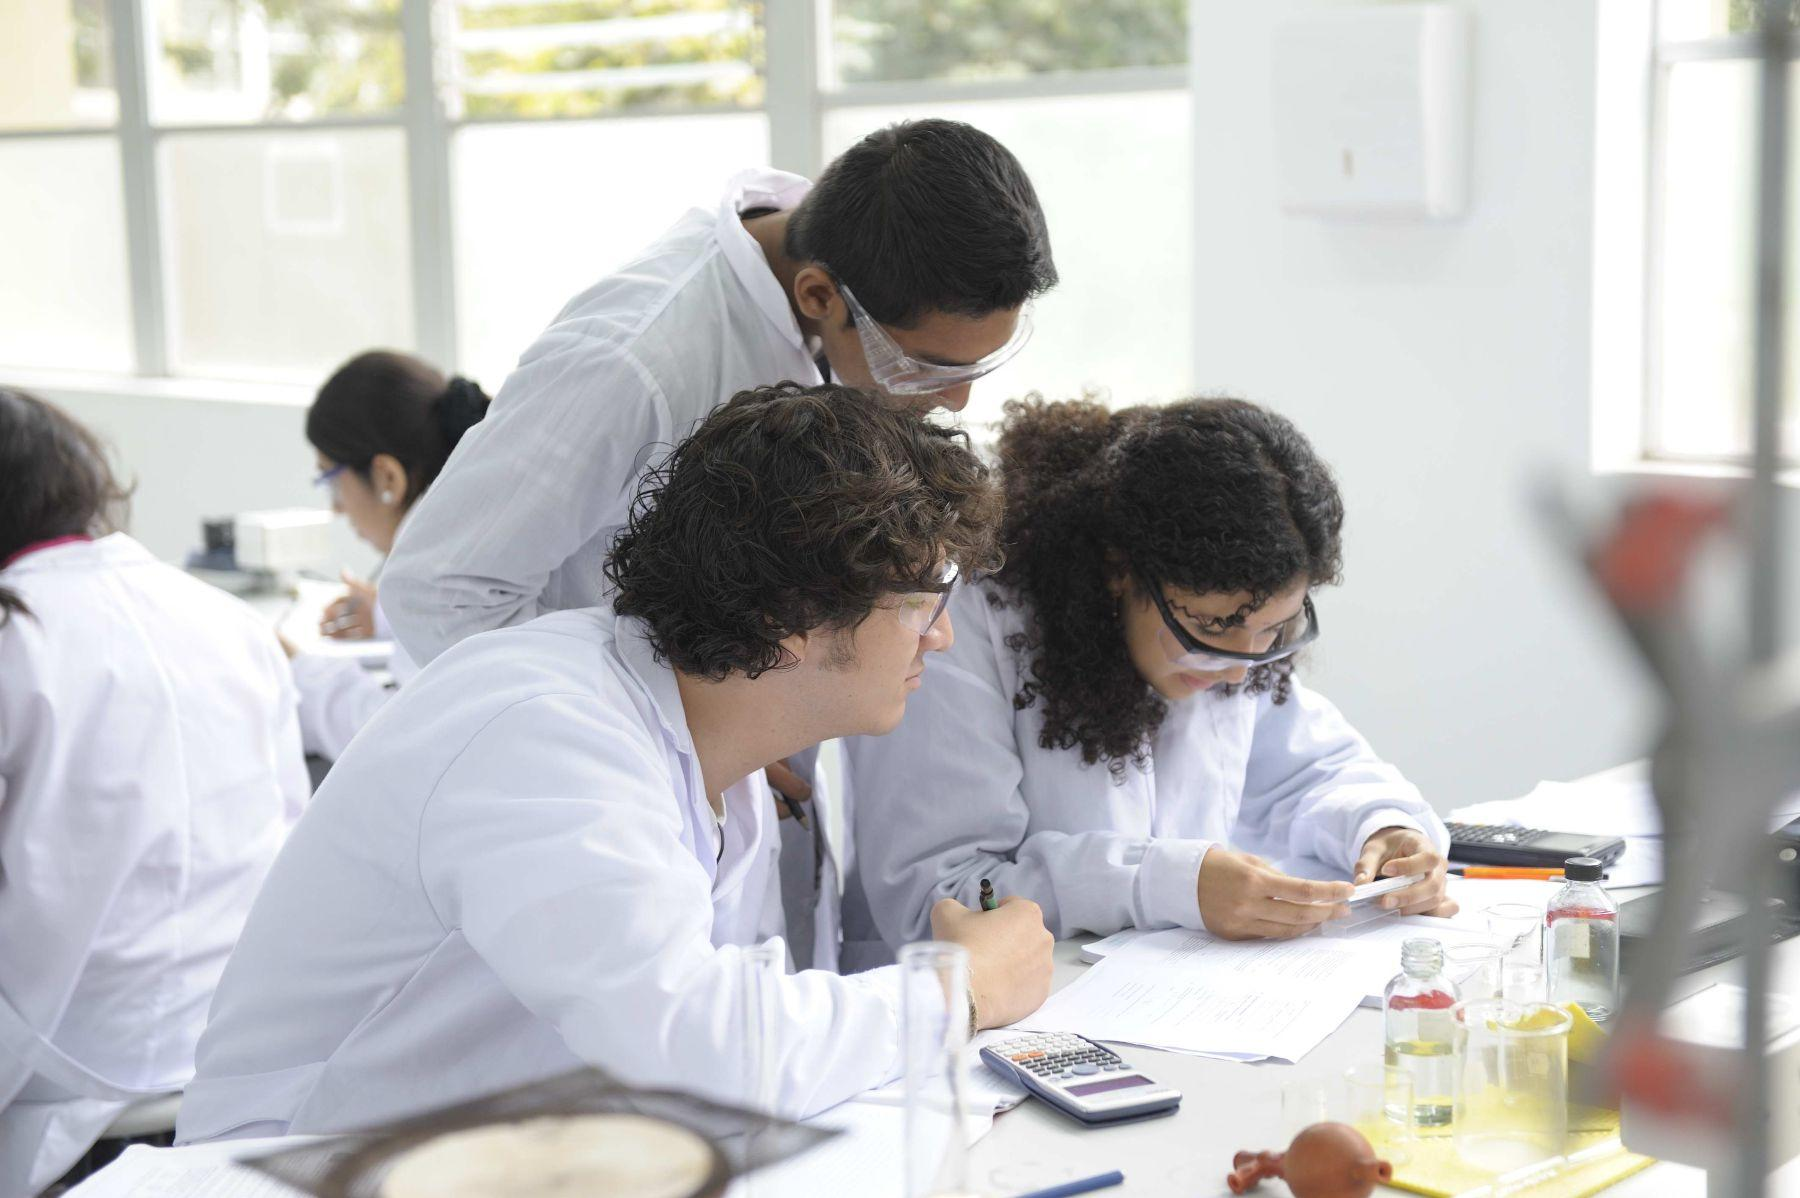 Venezuela: science 'brain drain' threatens future of research